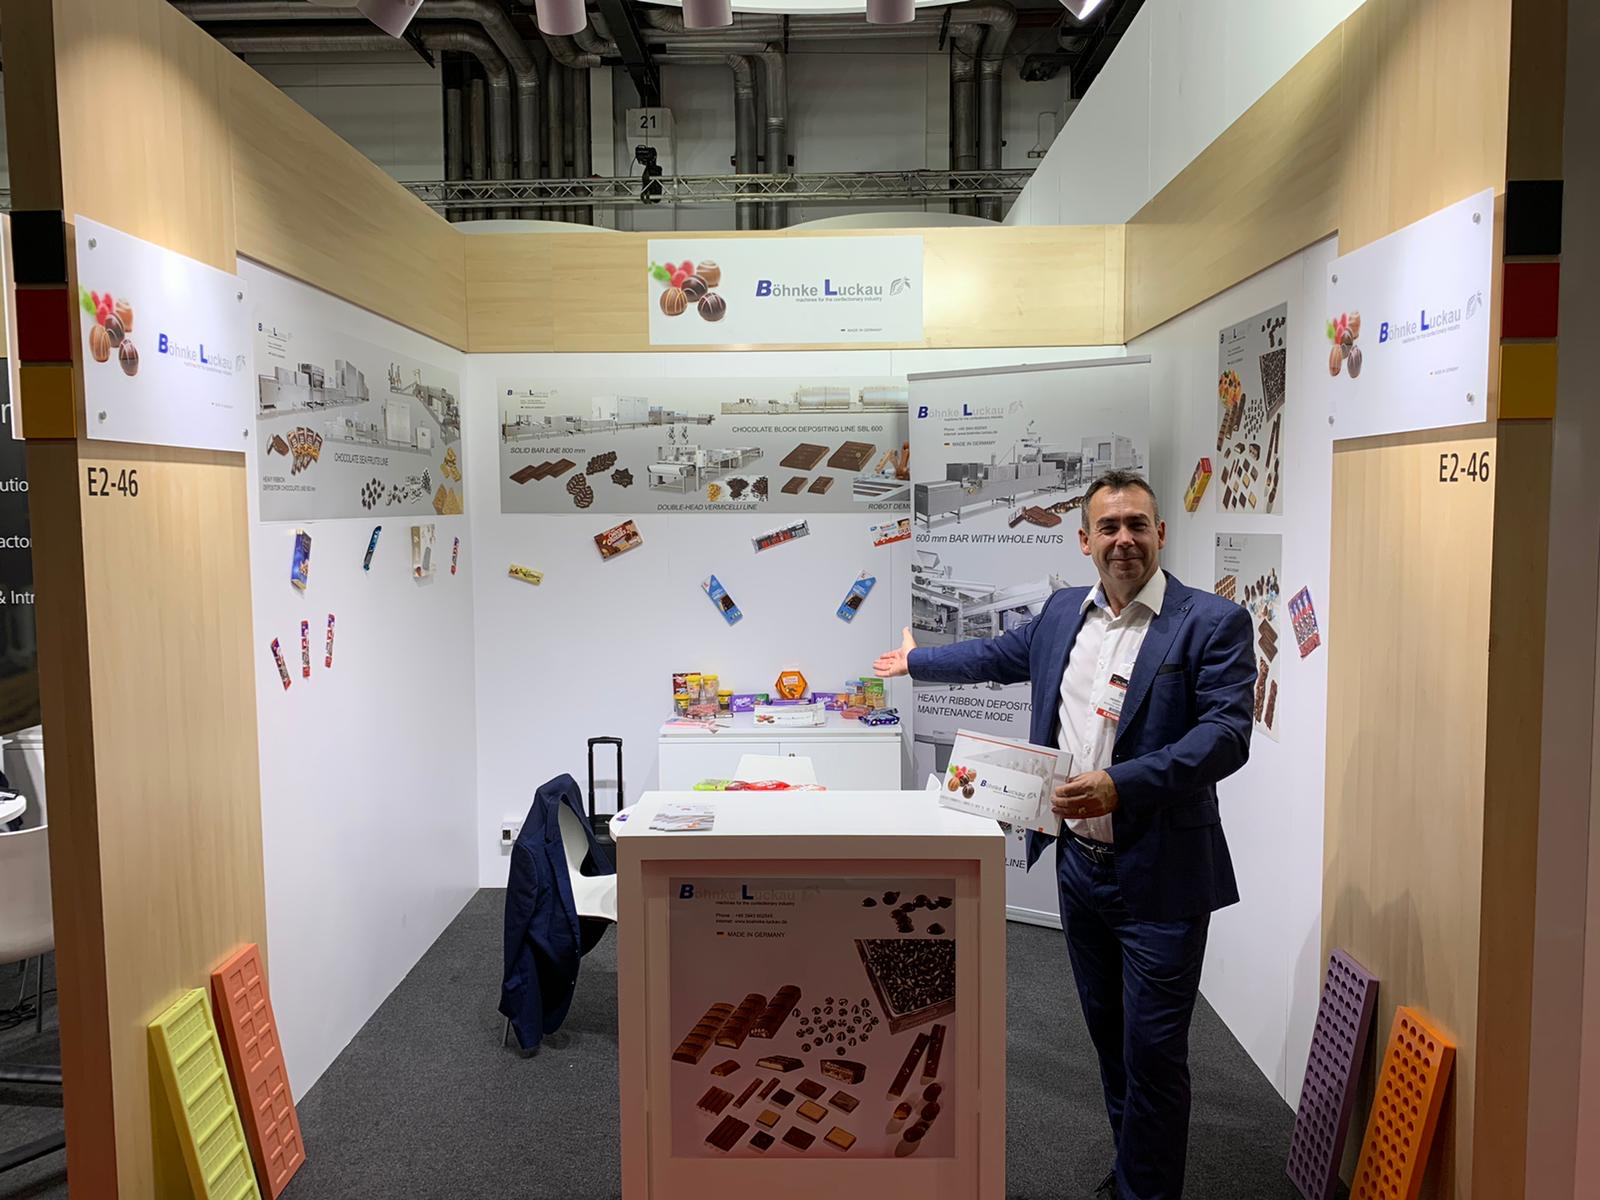 Böhnke & Luckau at the exhibition Dubai fair Gulfood Manufacturing 2019